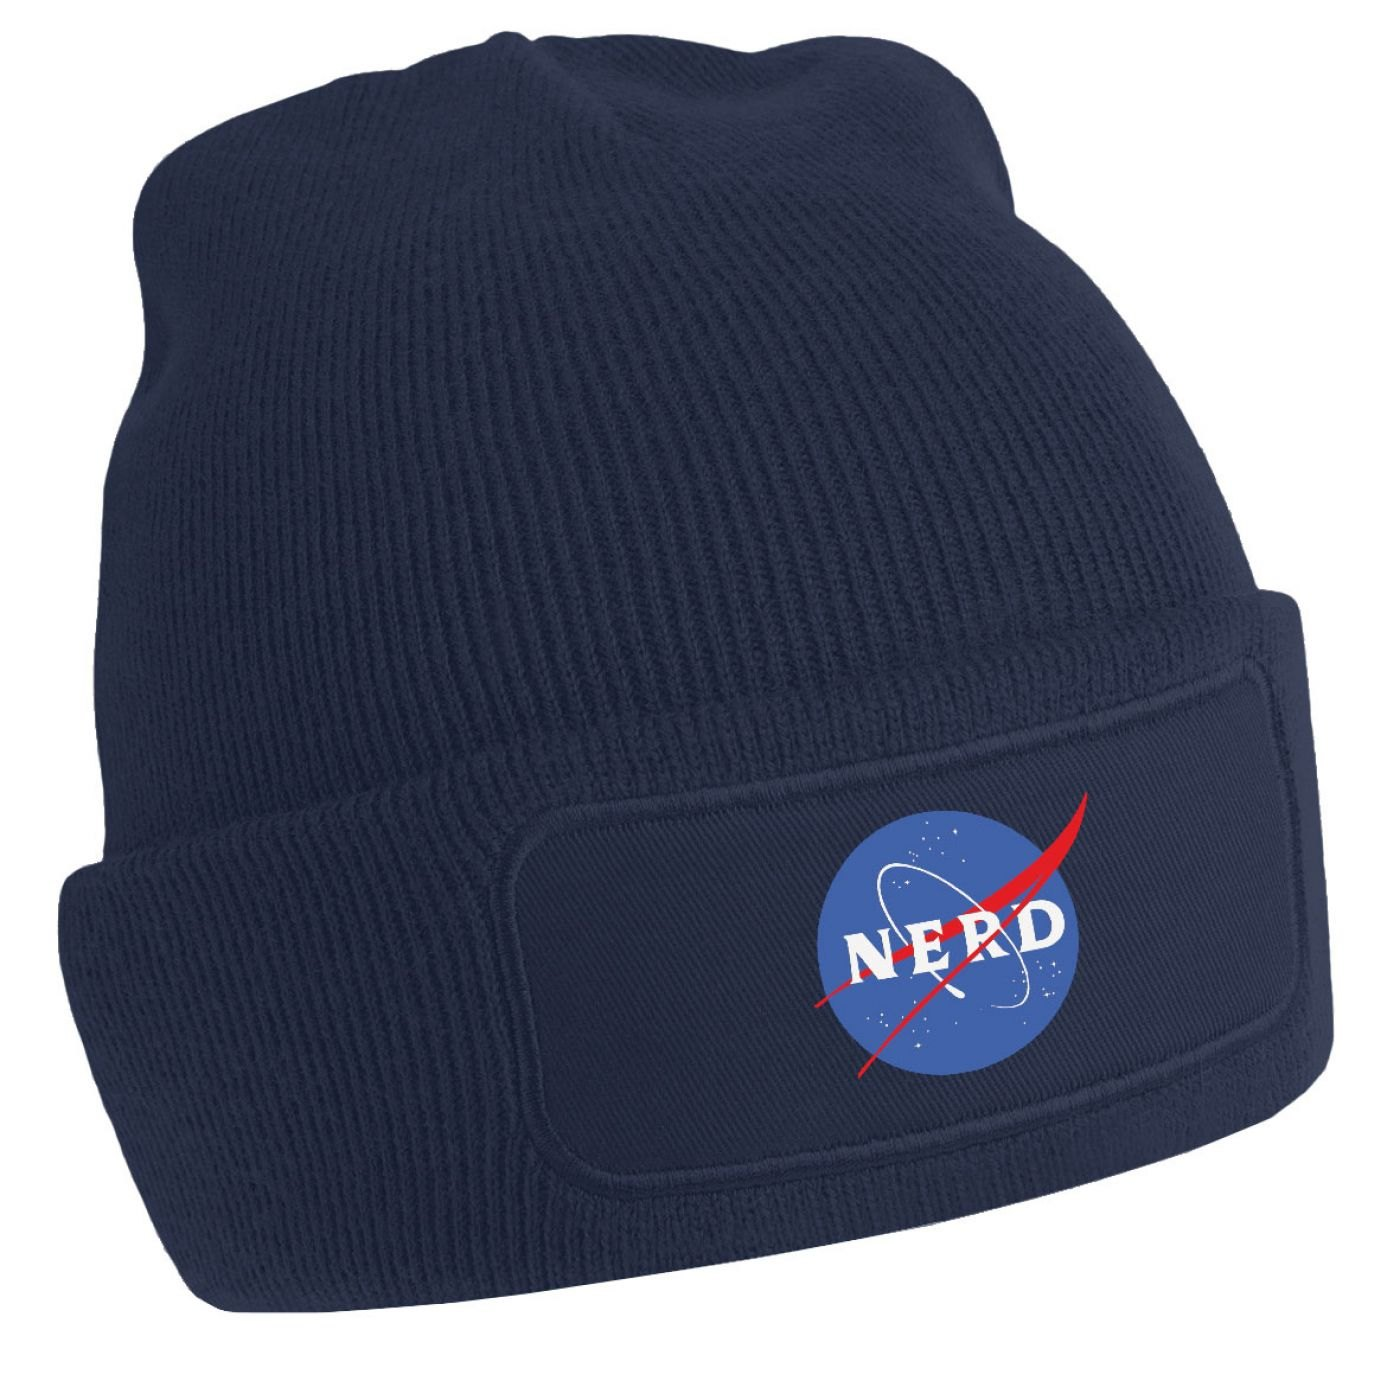 nasa snowboarding beanie - photo #11